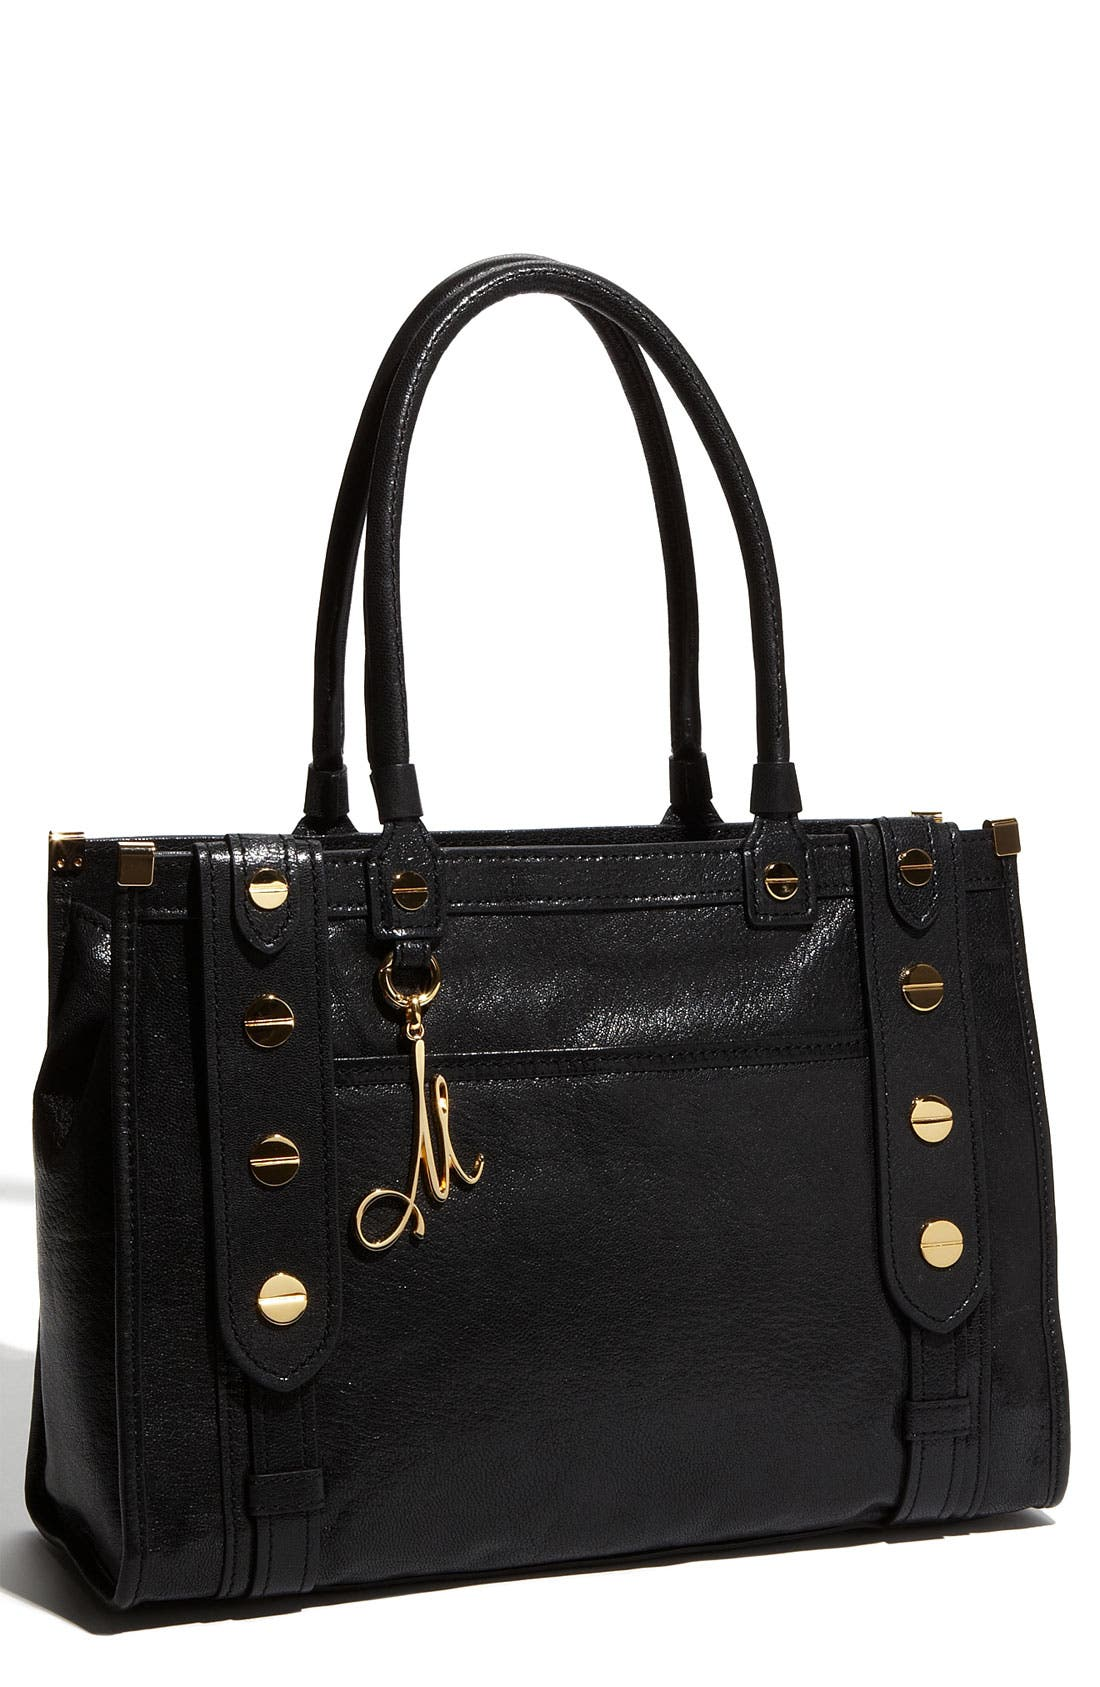 Alternate Image 1 Selected - Milly 'Caroline Sparkling - Large' Leather Tote